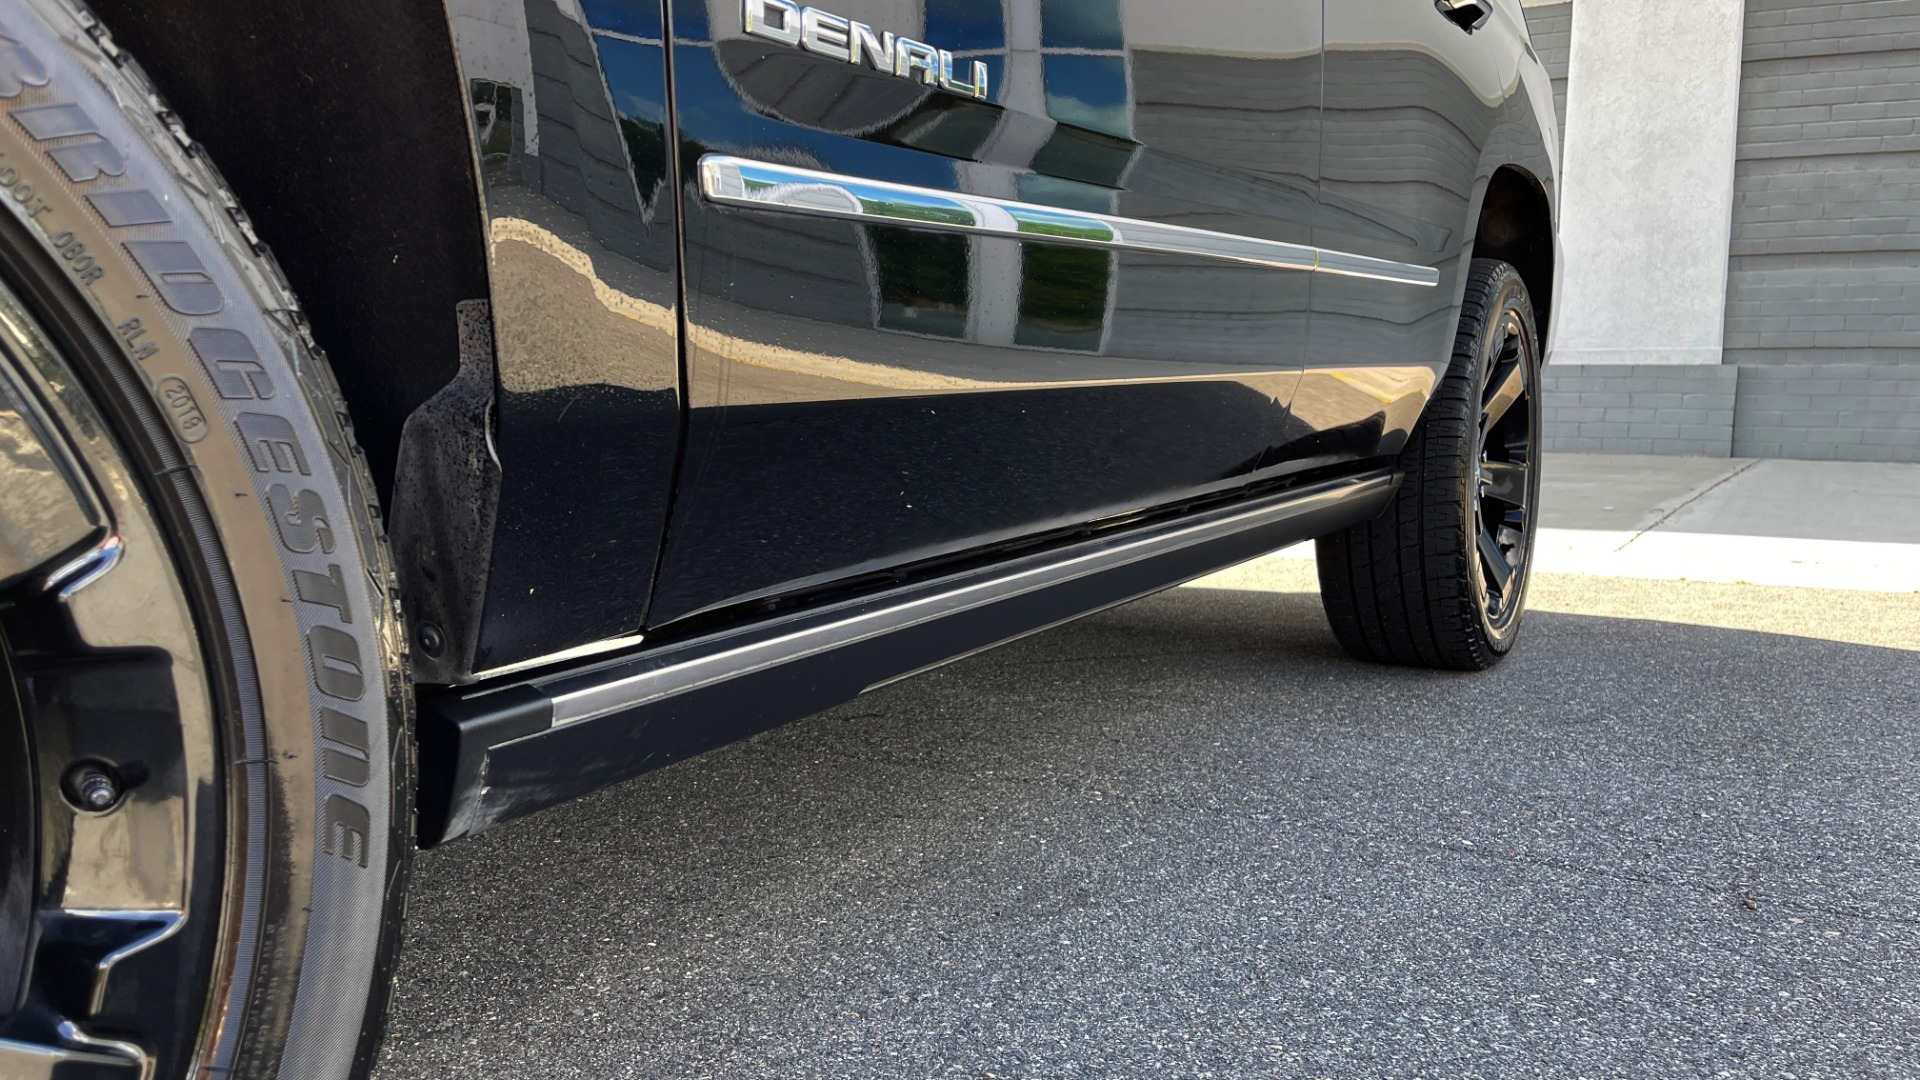 Used 2017 GMC YUKON DENALI 4WD / OPEN ROAD / NAV / ENTERTAINMENT / SUNROOF / ADAPT CRUISE for sale Sold at Formula Imports in Charlotte NC 28227 26